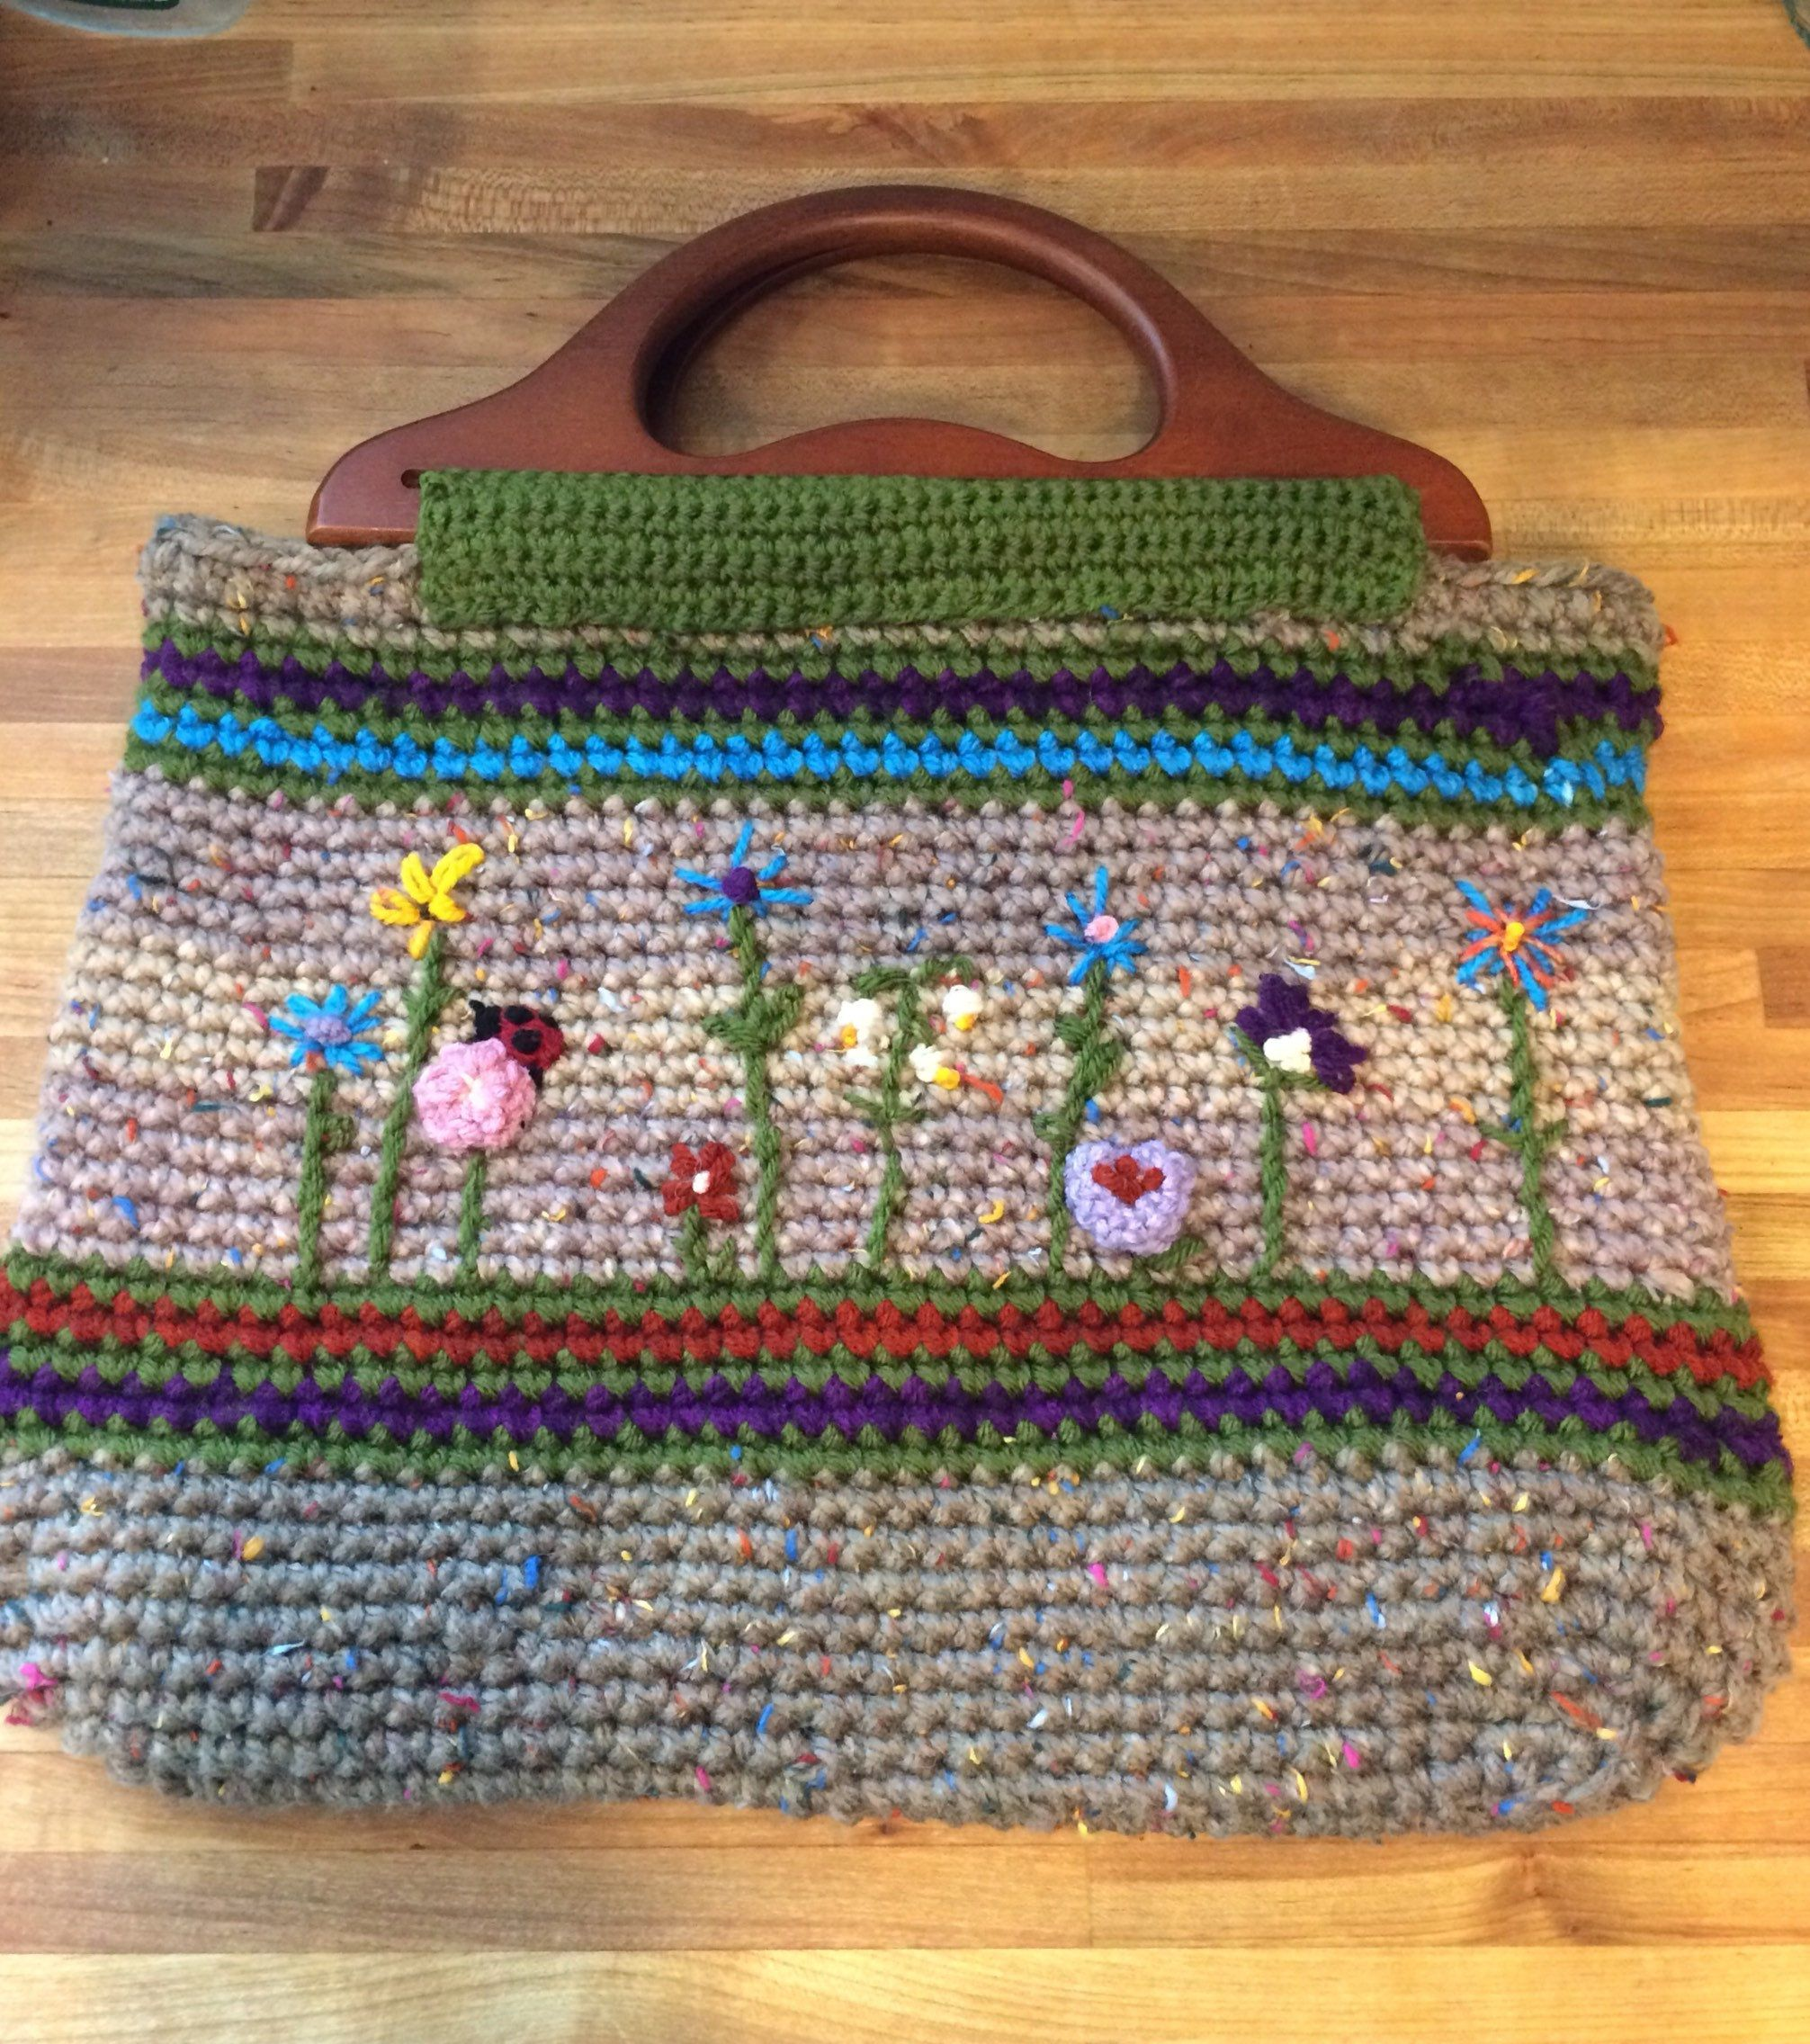 Crocheted Market Bag With Wood Handles And Embroidered Spring Flowers Great Everyday Purse Or Crochet Project Bag Crochet Market Bag Crochet Tote Bag Hand Crochet